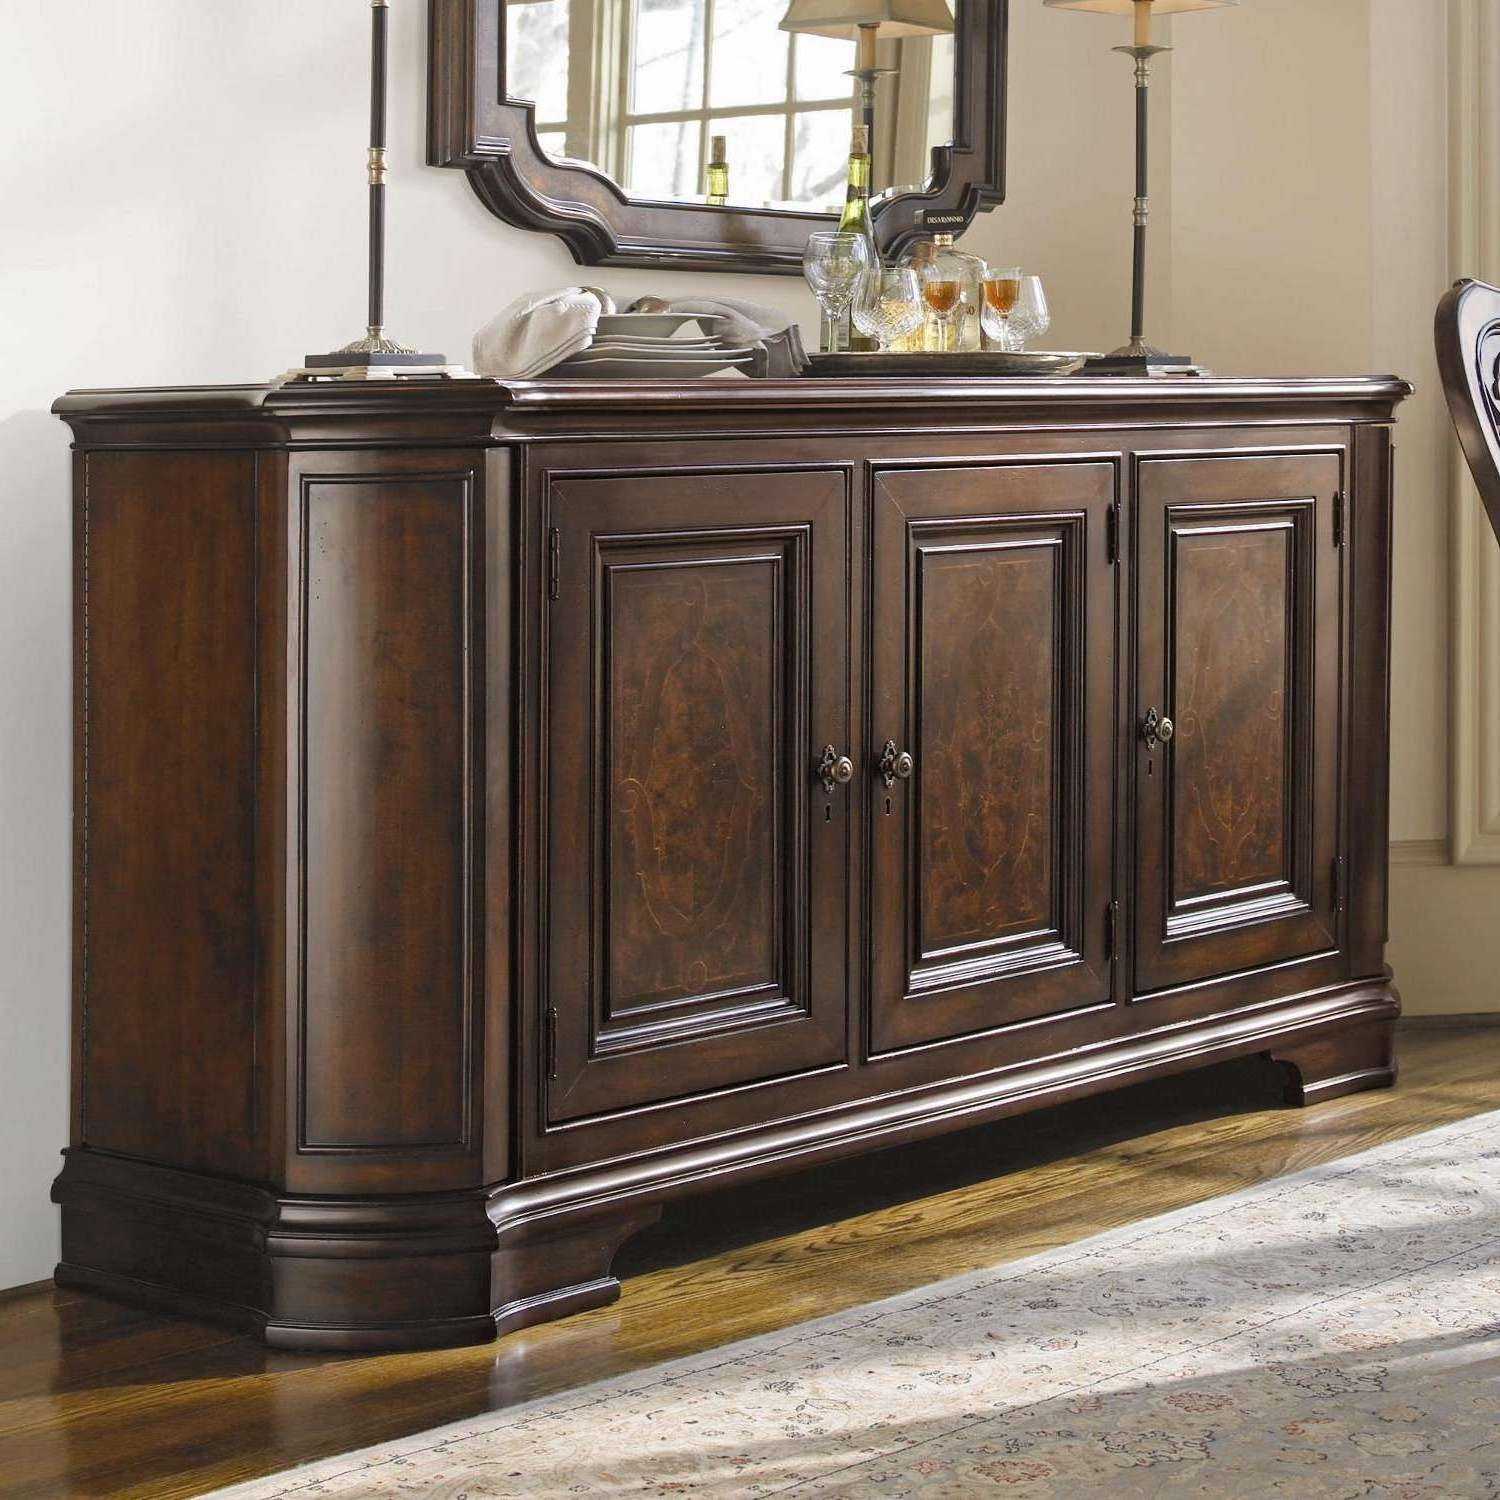 The Best Buffet Sideboards With Sideboards Decors (View 17 of 20)